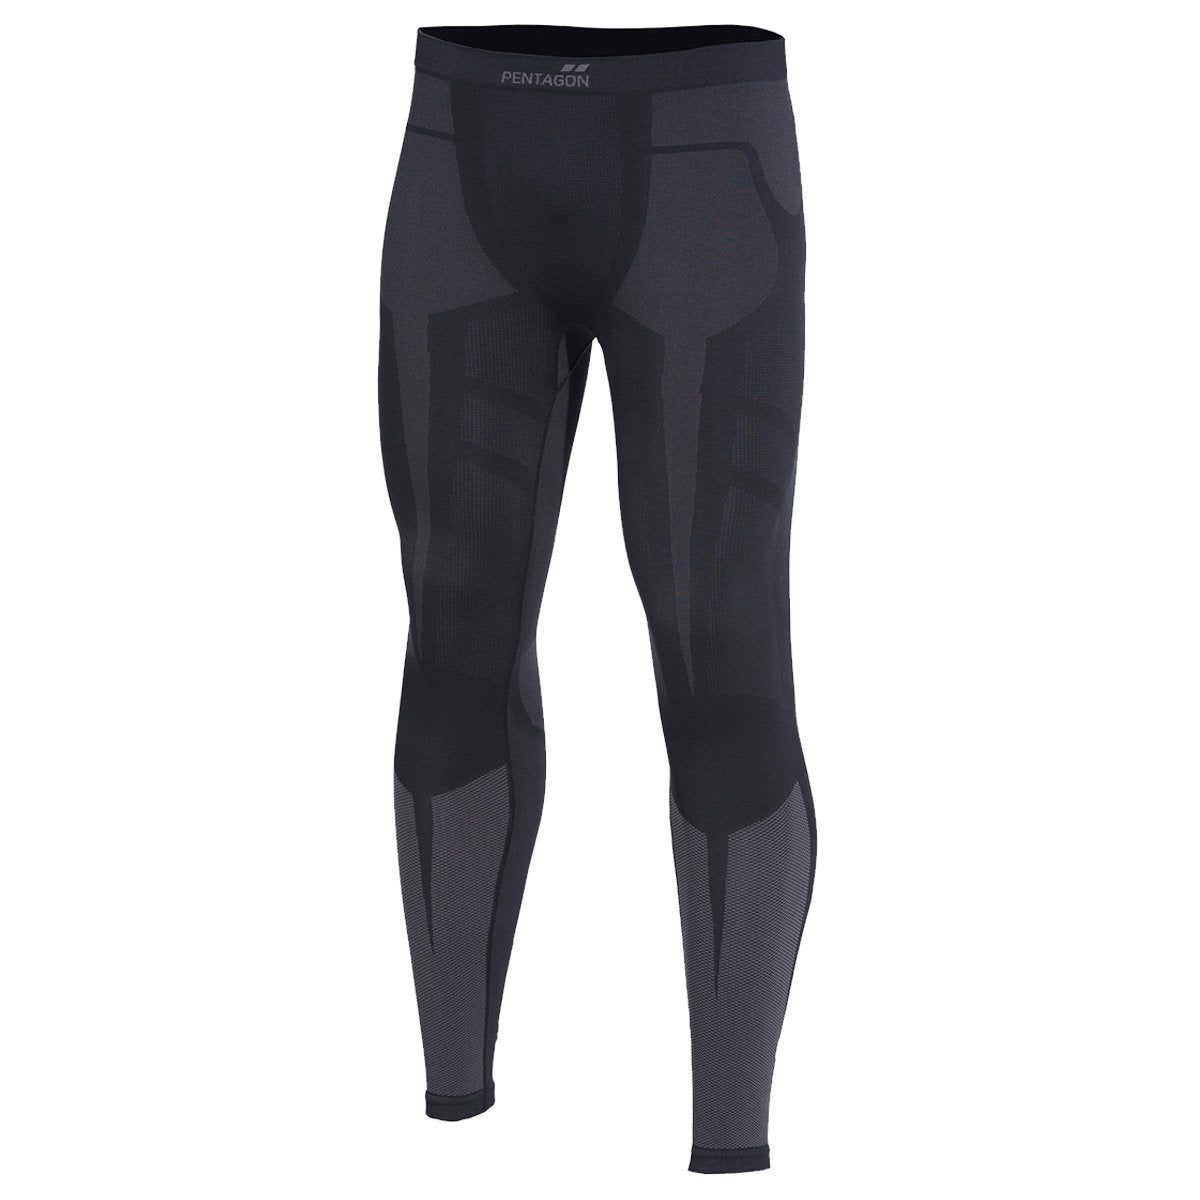 Pentagon Plexis Long Johns | UKMCPro